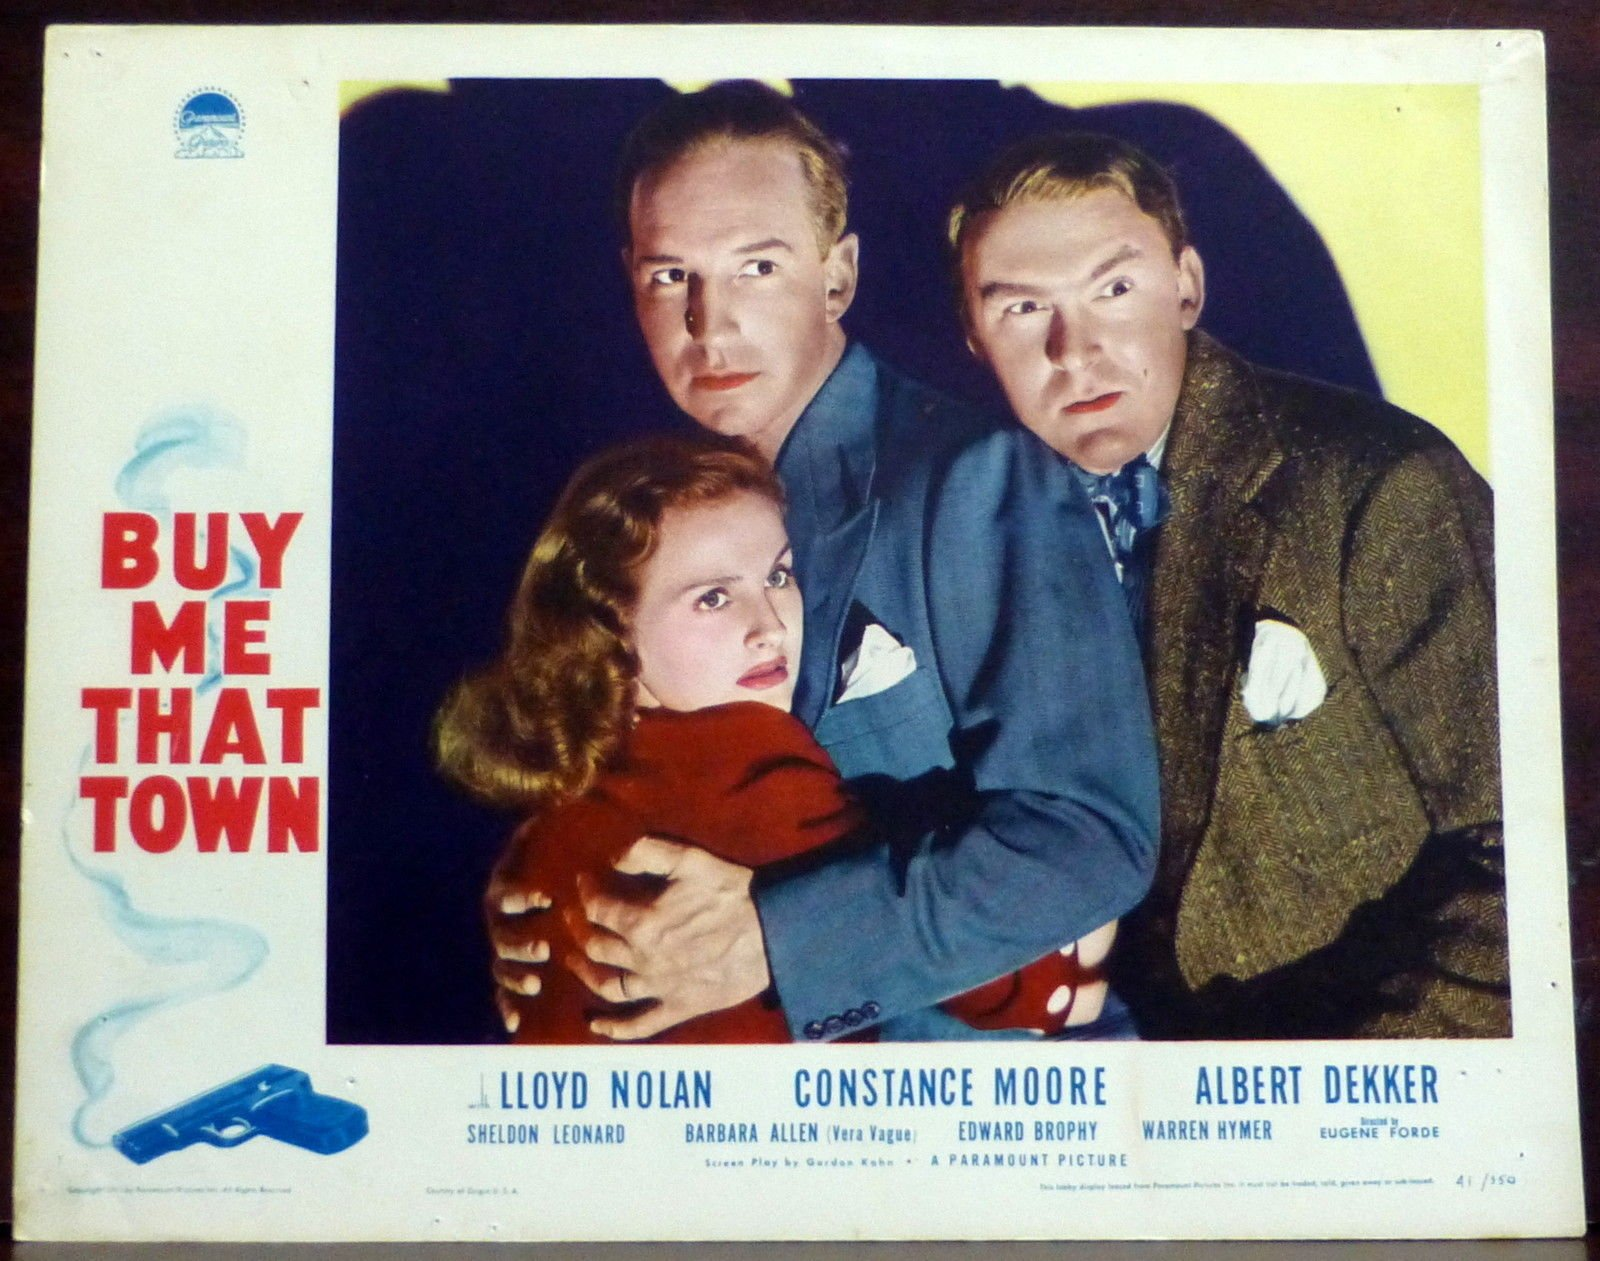 Albert Dekker, Constance Moore, and Lloyd Nolan in Buy Me That Town (1941)